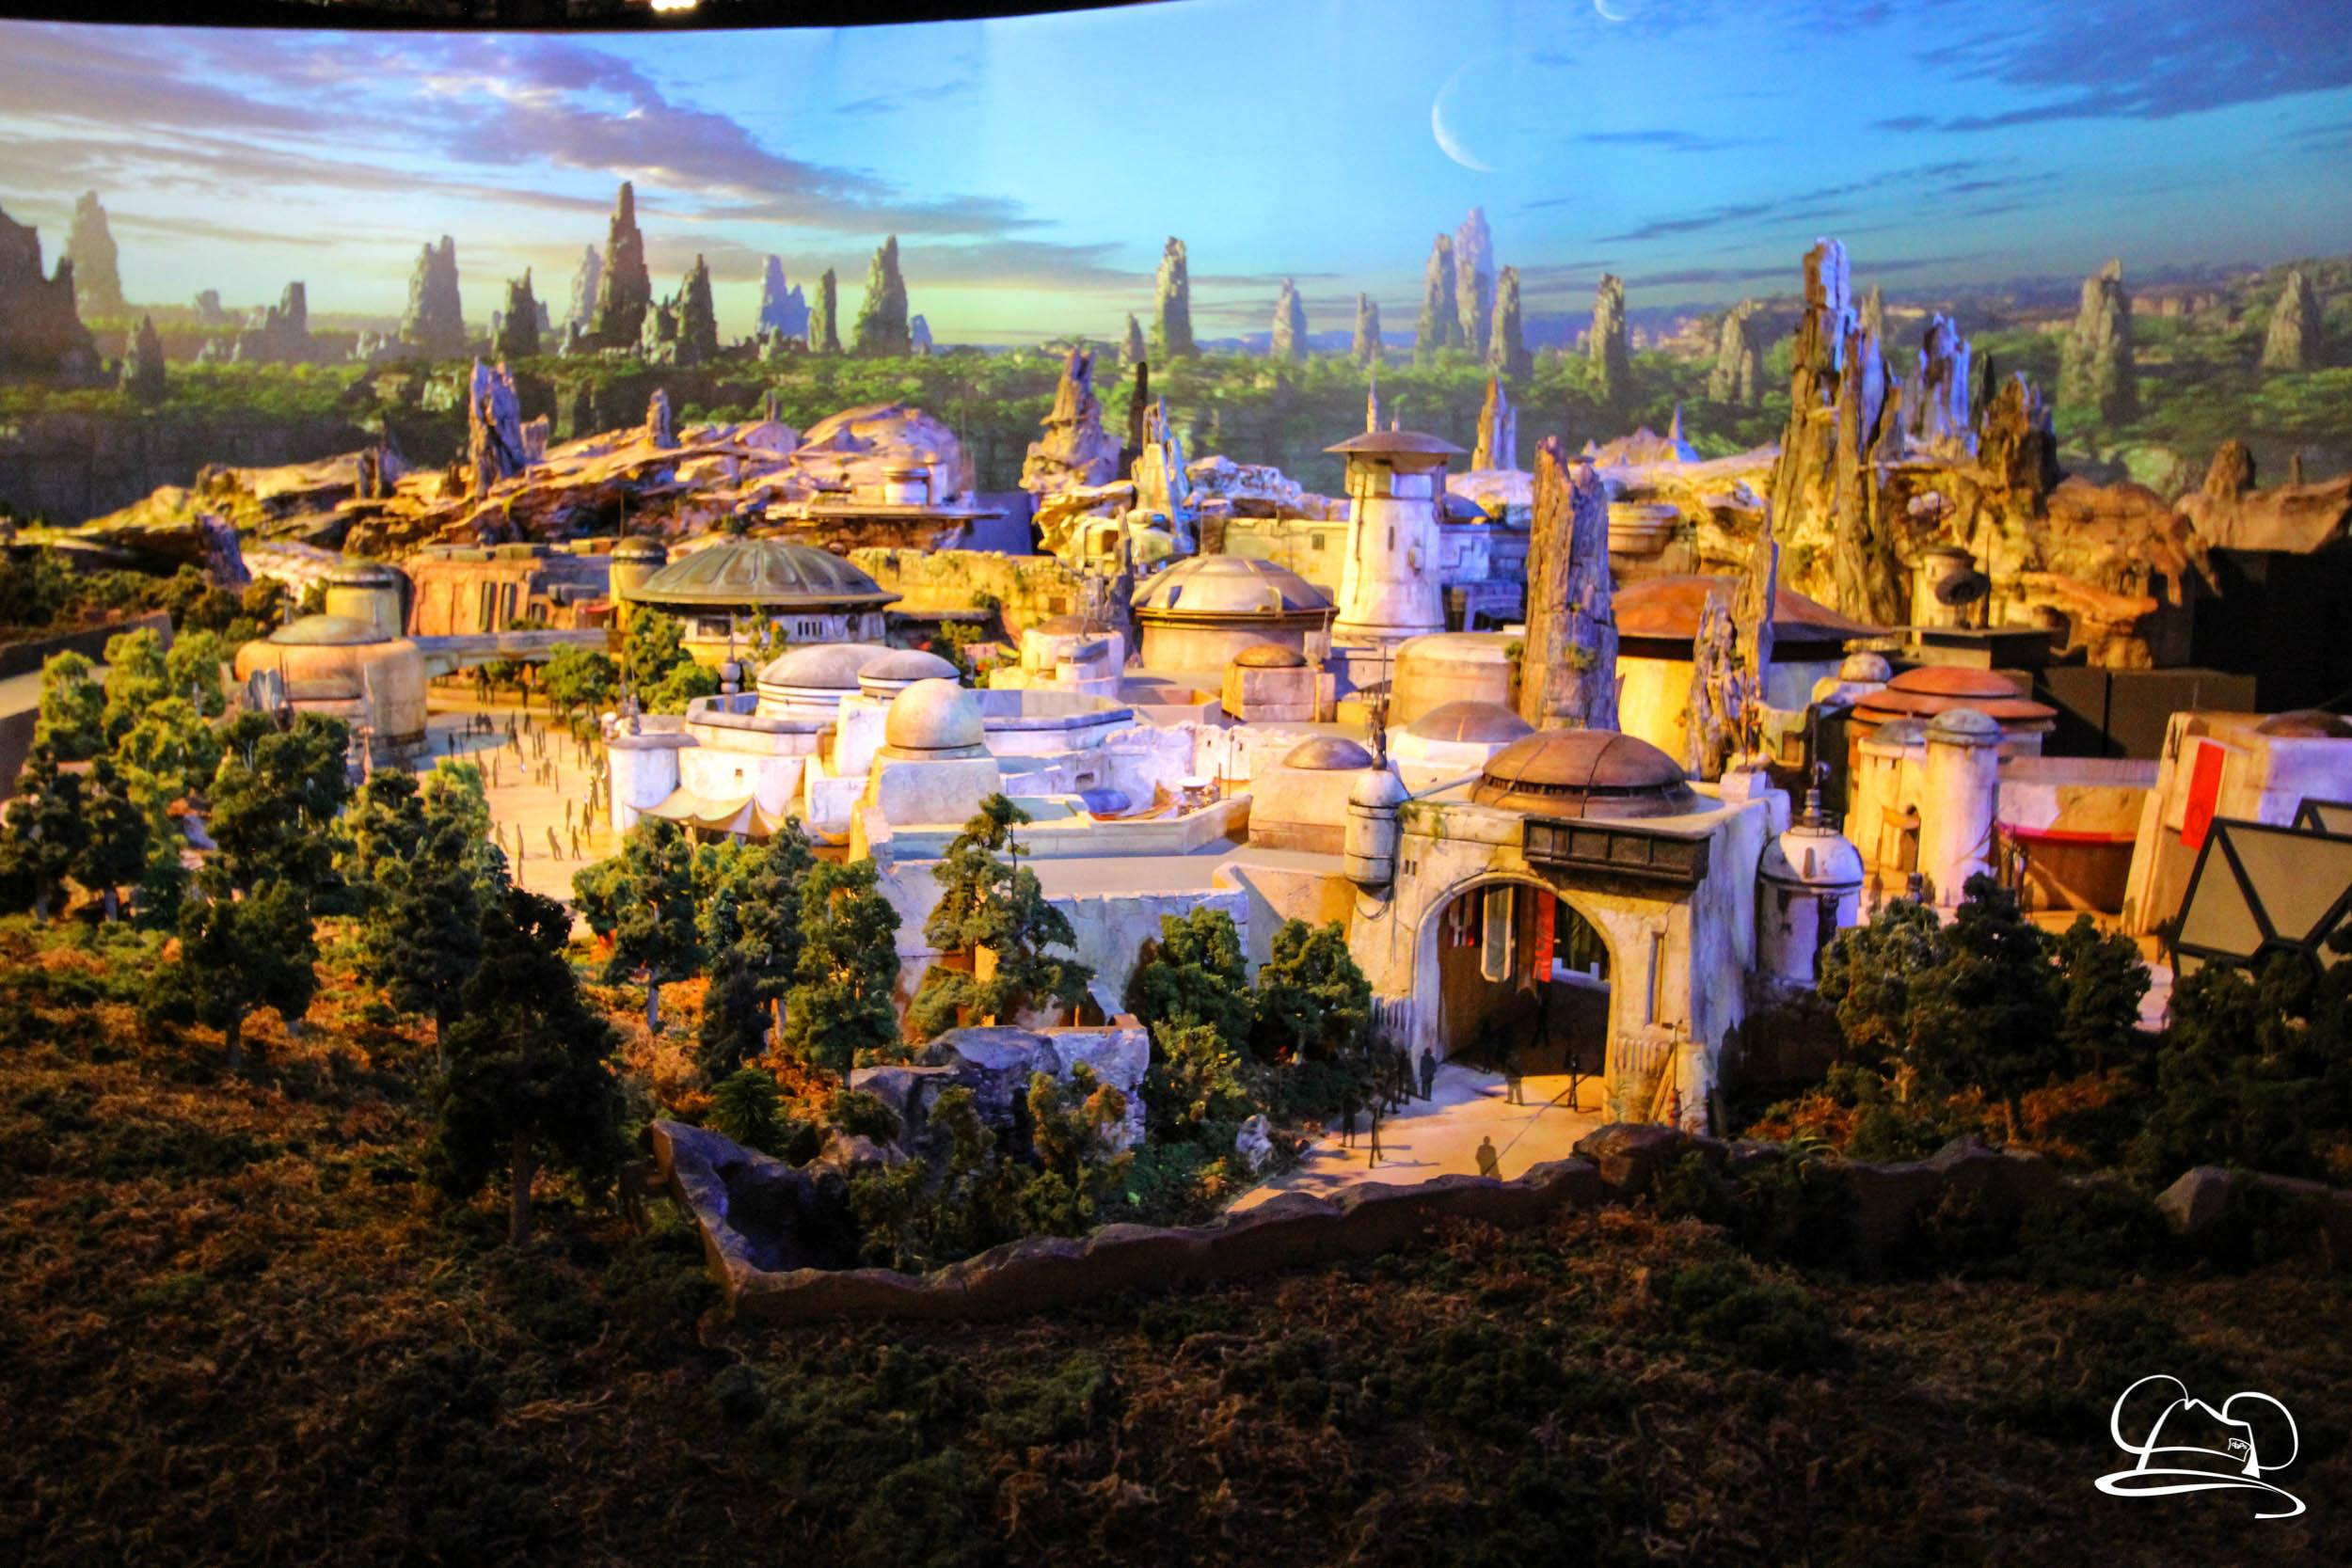 Star Wars: Galaxy's Edge to Open at Disneyland Resort Summer 2019 and Late Fall 2019 for Disney's Hollywood Studios